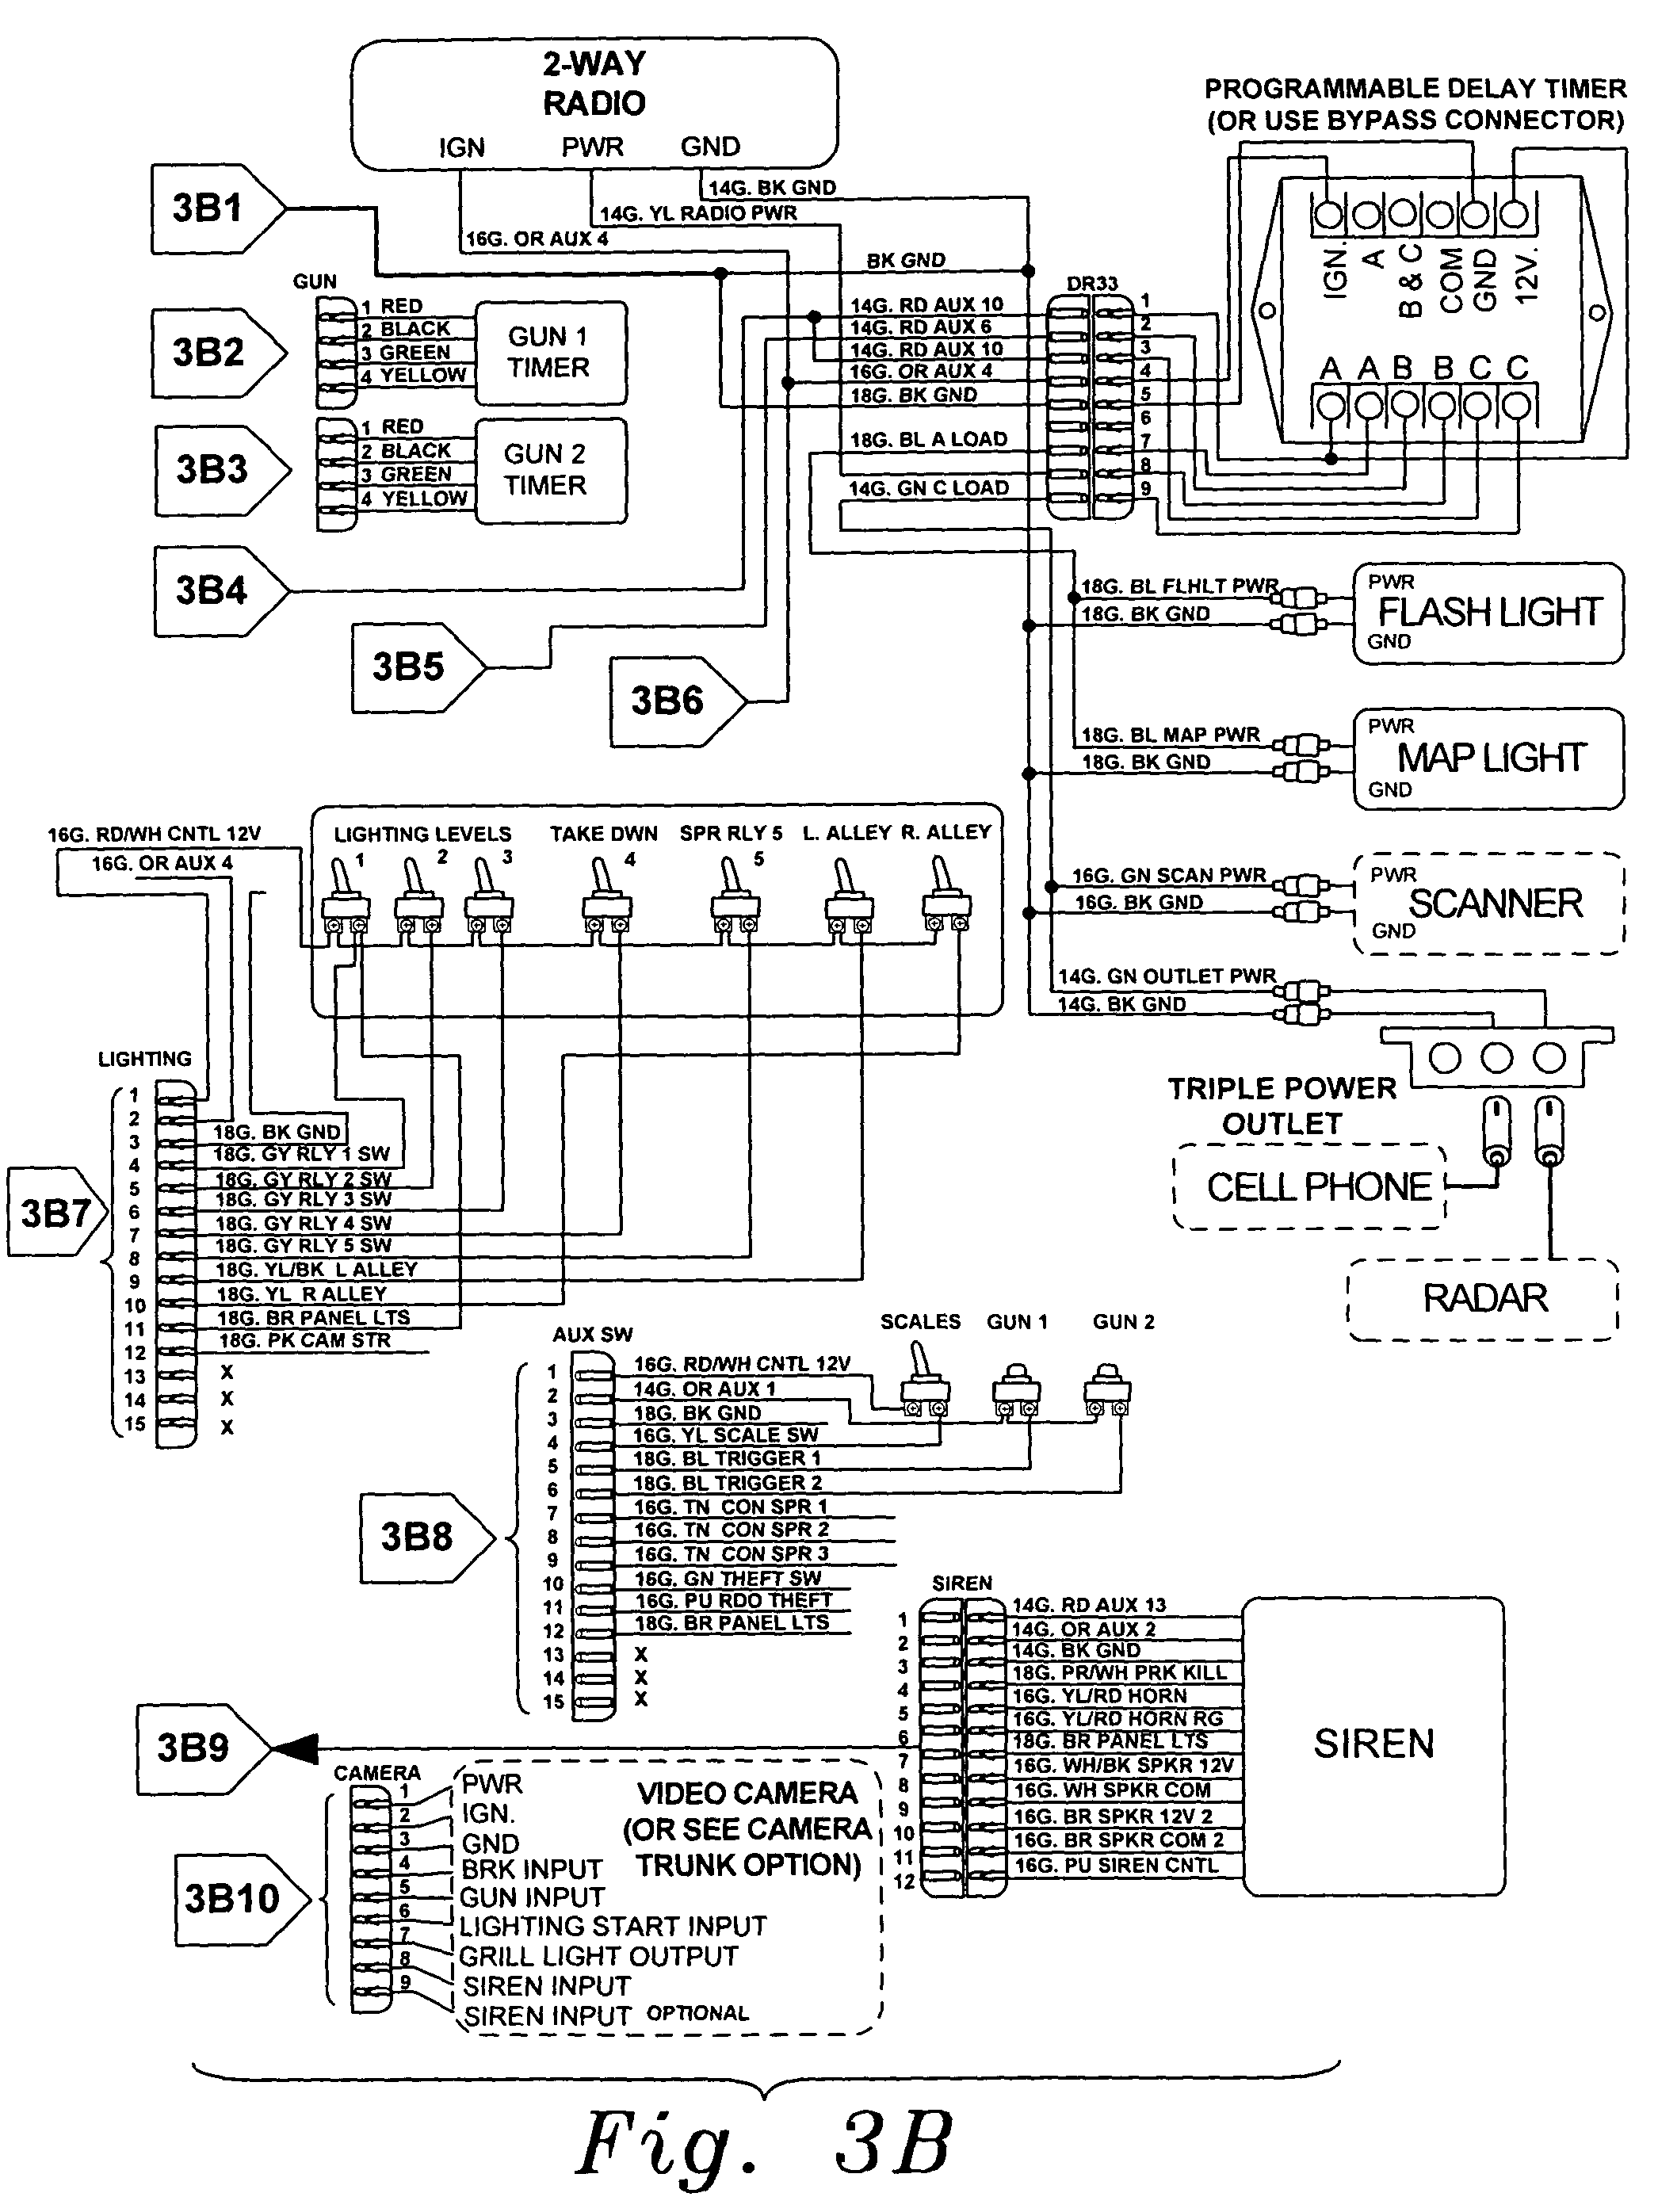 whelen edge 9m wiring diagram 29 wiring diagram images wiring diagrams edmiracle co Whelen Edge Freedom Wiring-Diagram whelen edge 9m 9000 series wiring diagram